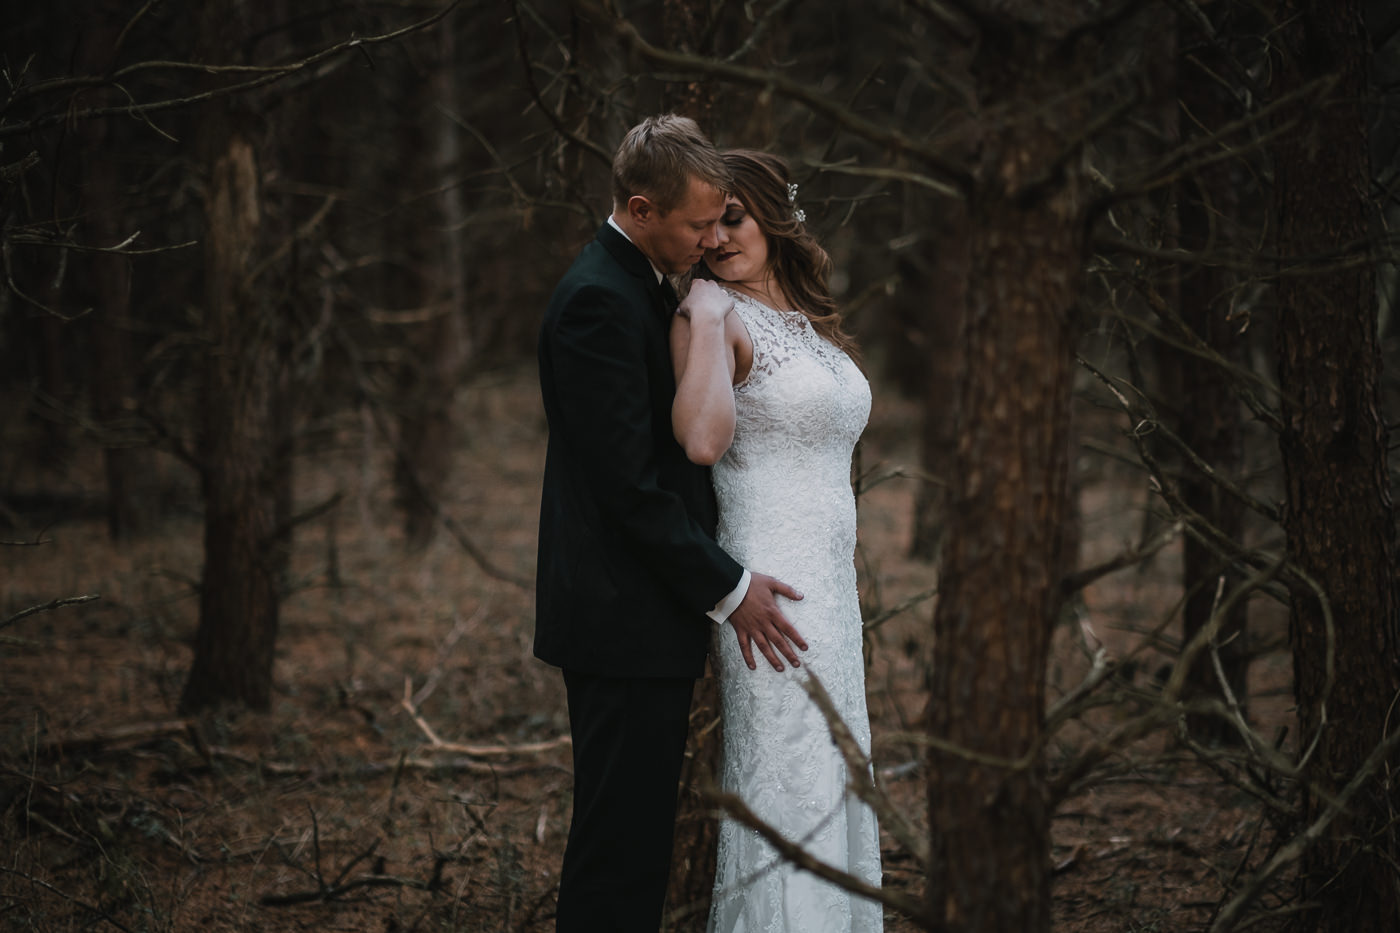 rogers.arkansas.weddingphotos.©2018mileswittboyer-19.jpg